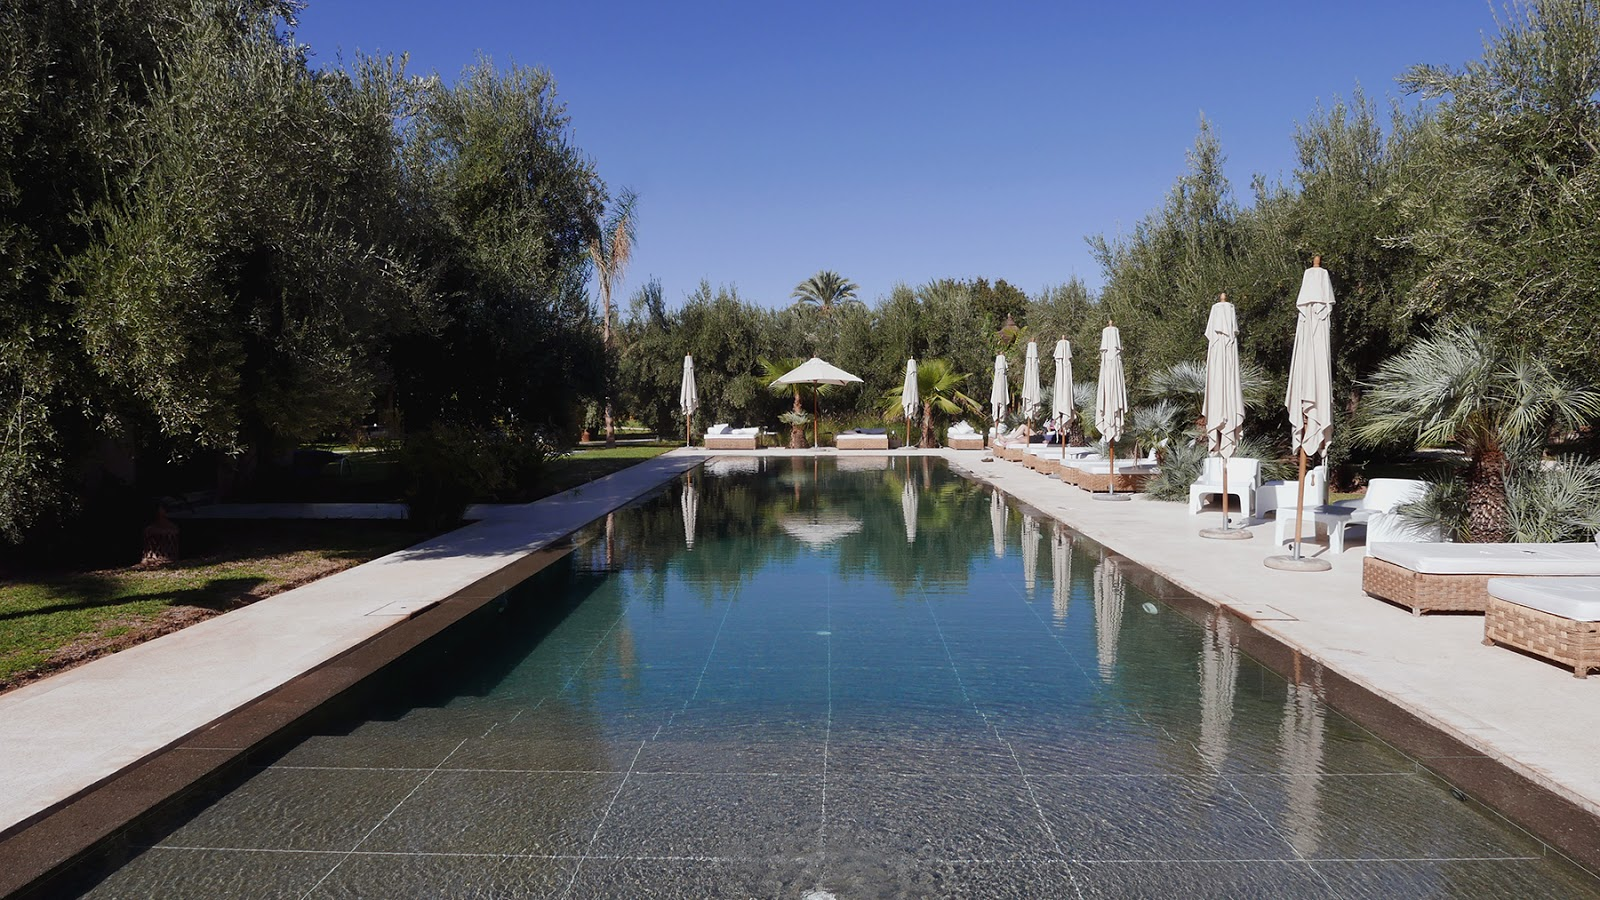 Euriental | luxury travel & style | Les 5 Djellabas, Marrakech, Morocco